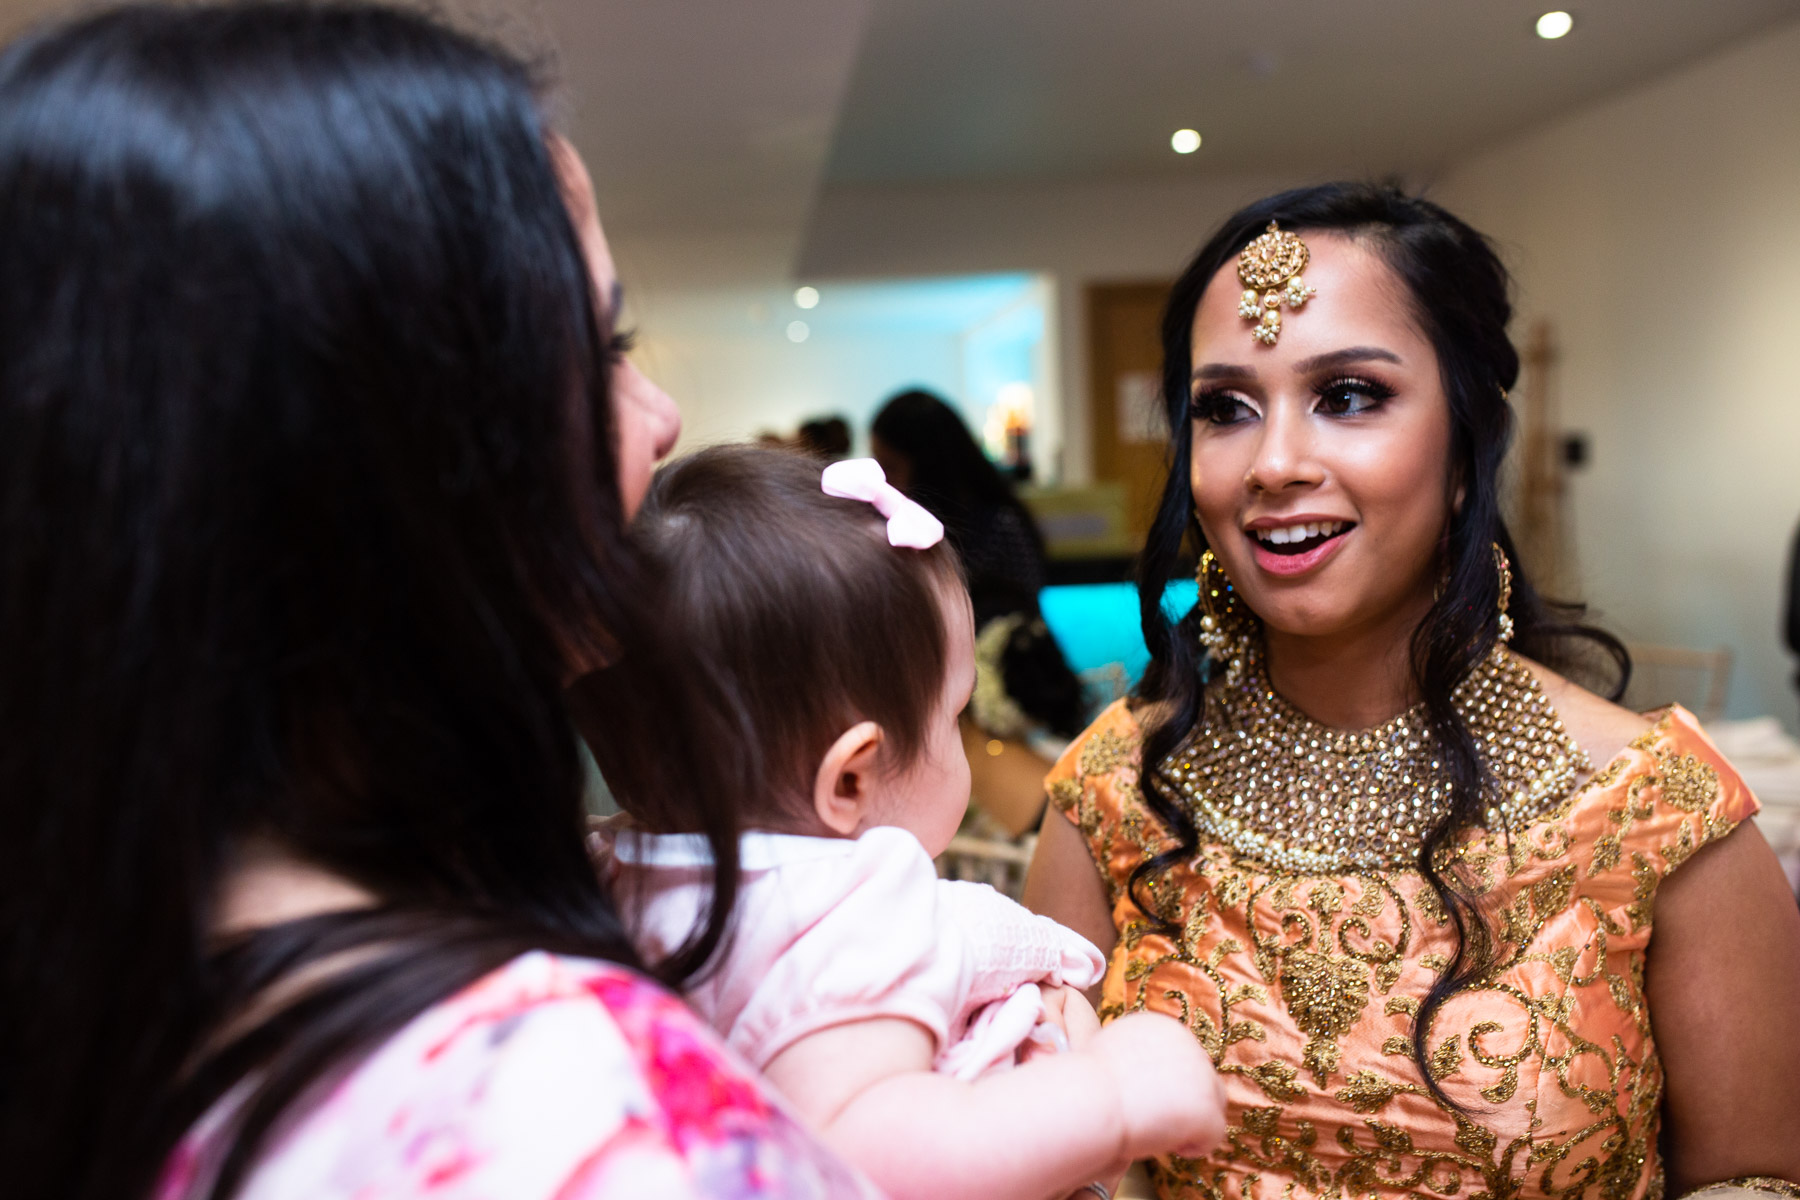 Bride smiling at wedding guest